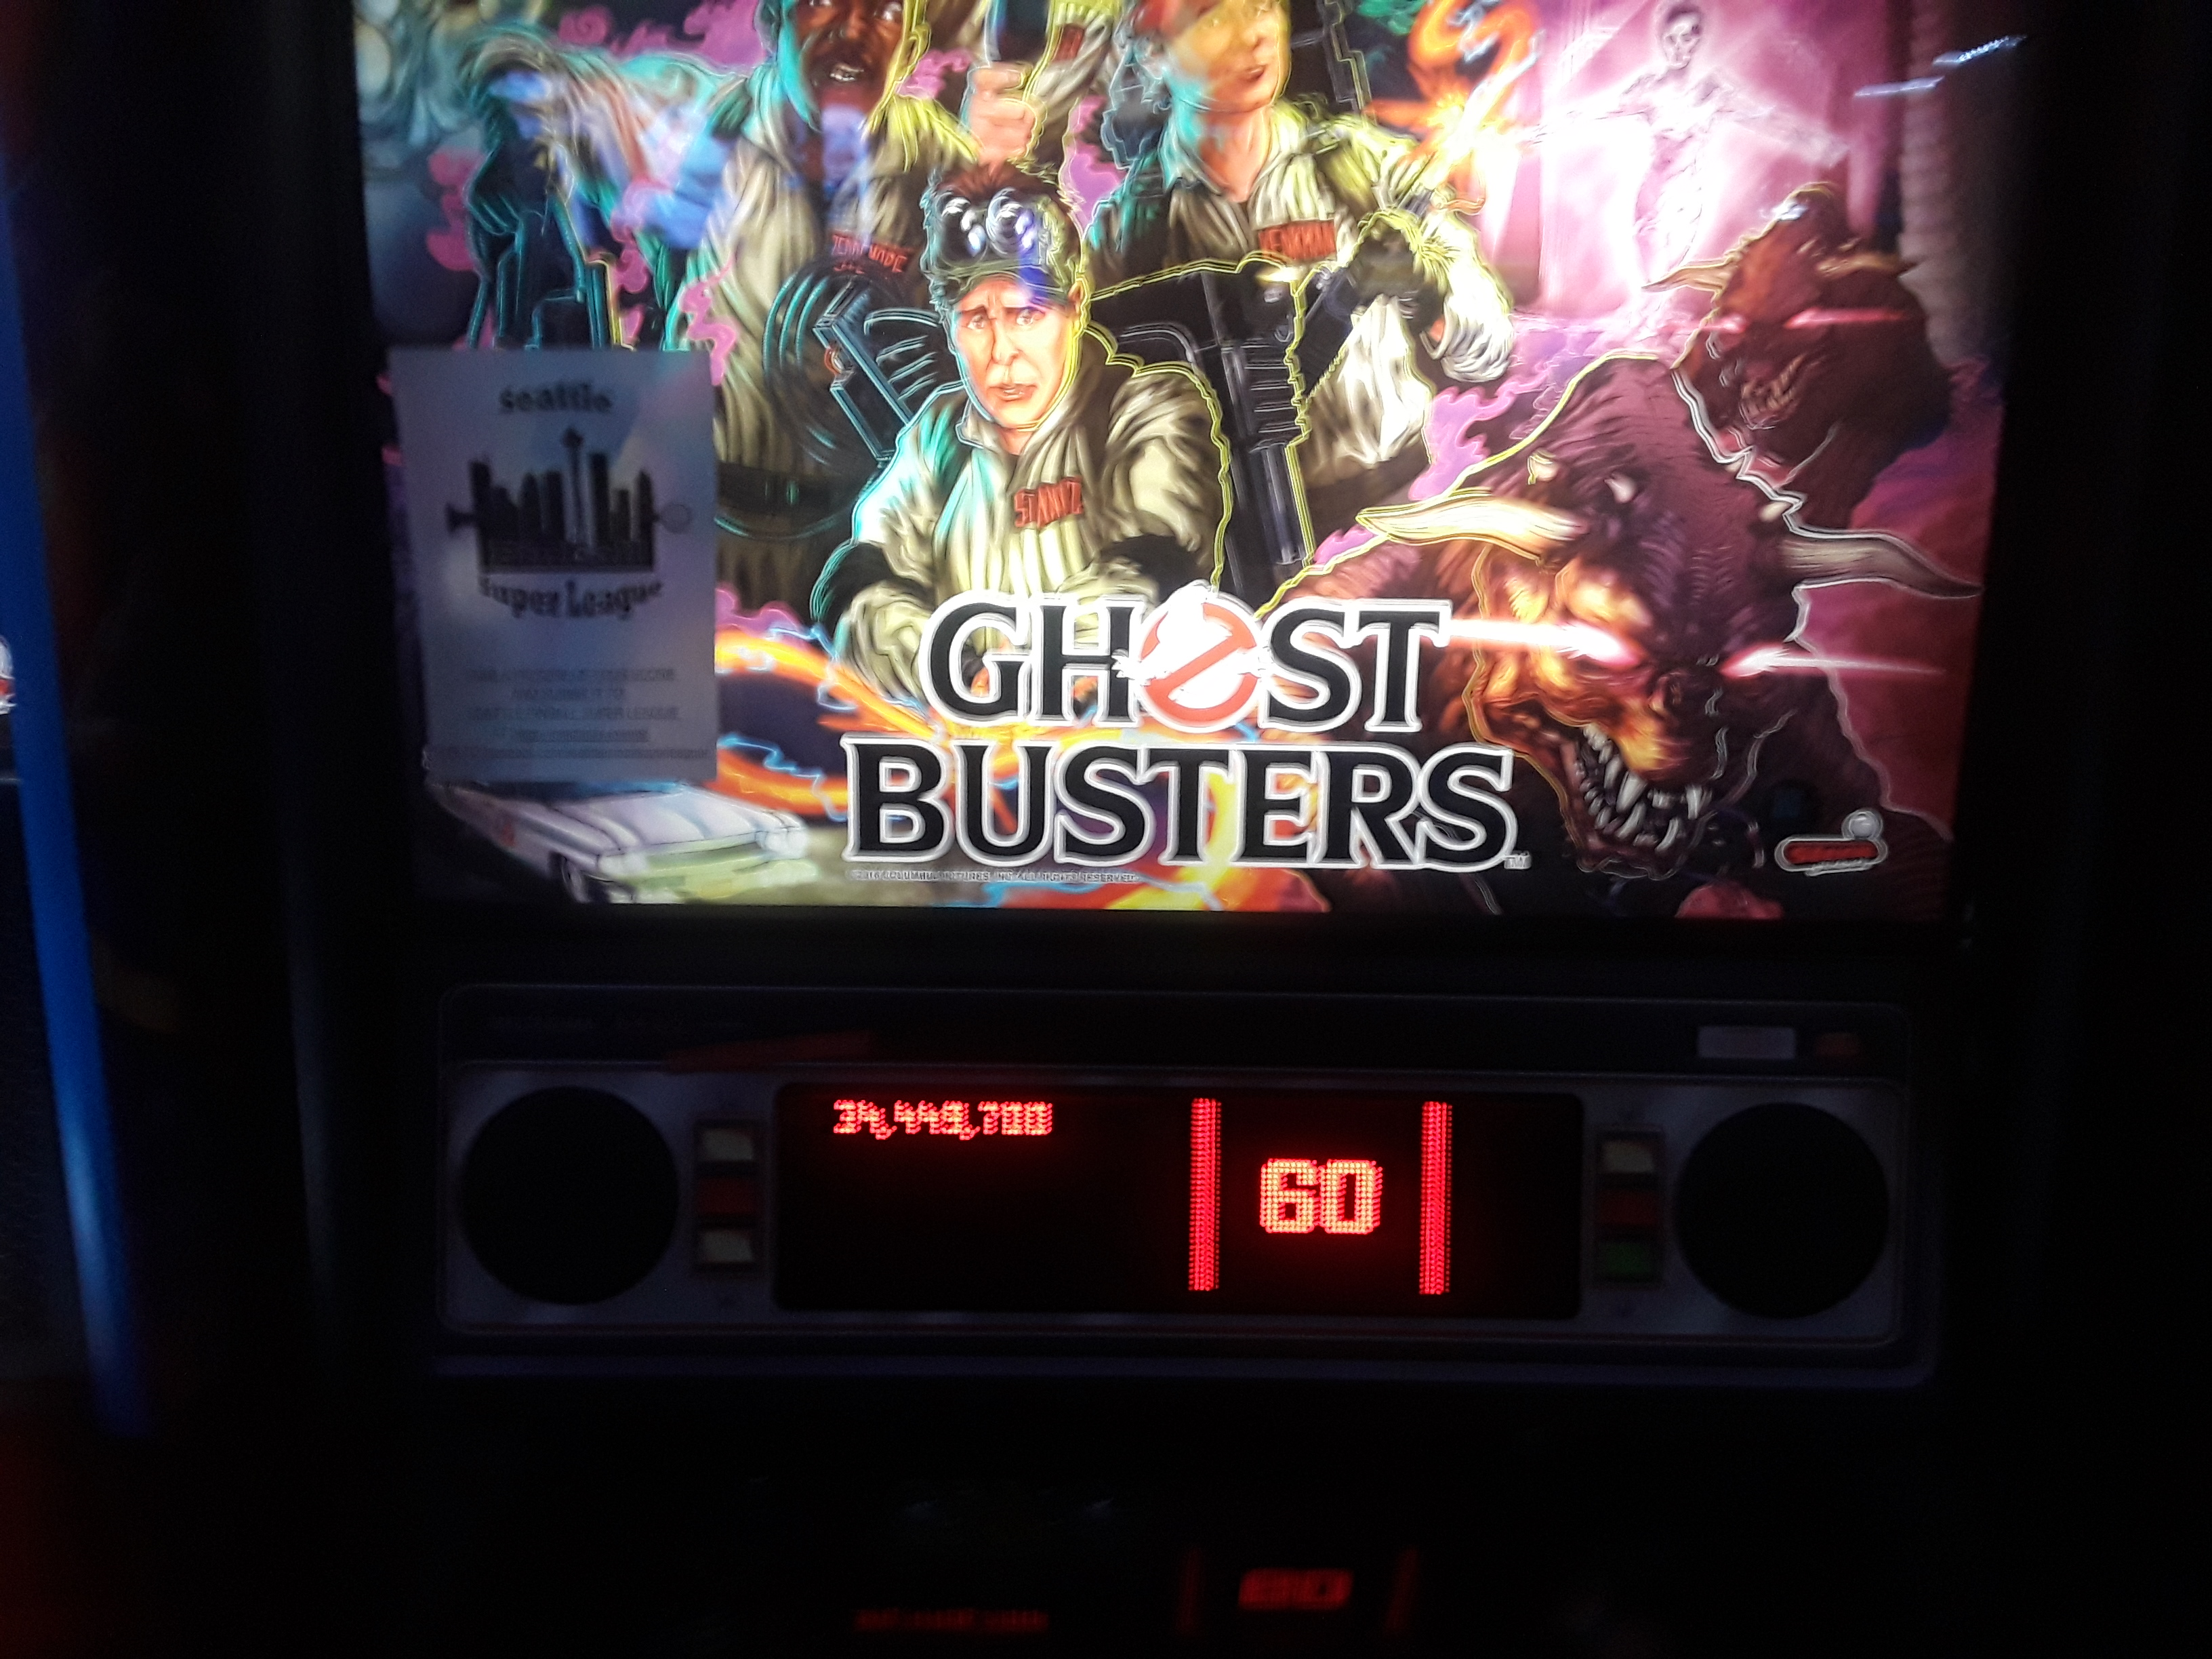 JML101582: Ghostbusters (Pinball: 3 Balls) 34,449,700 points on 2018-10-06 17:48:11